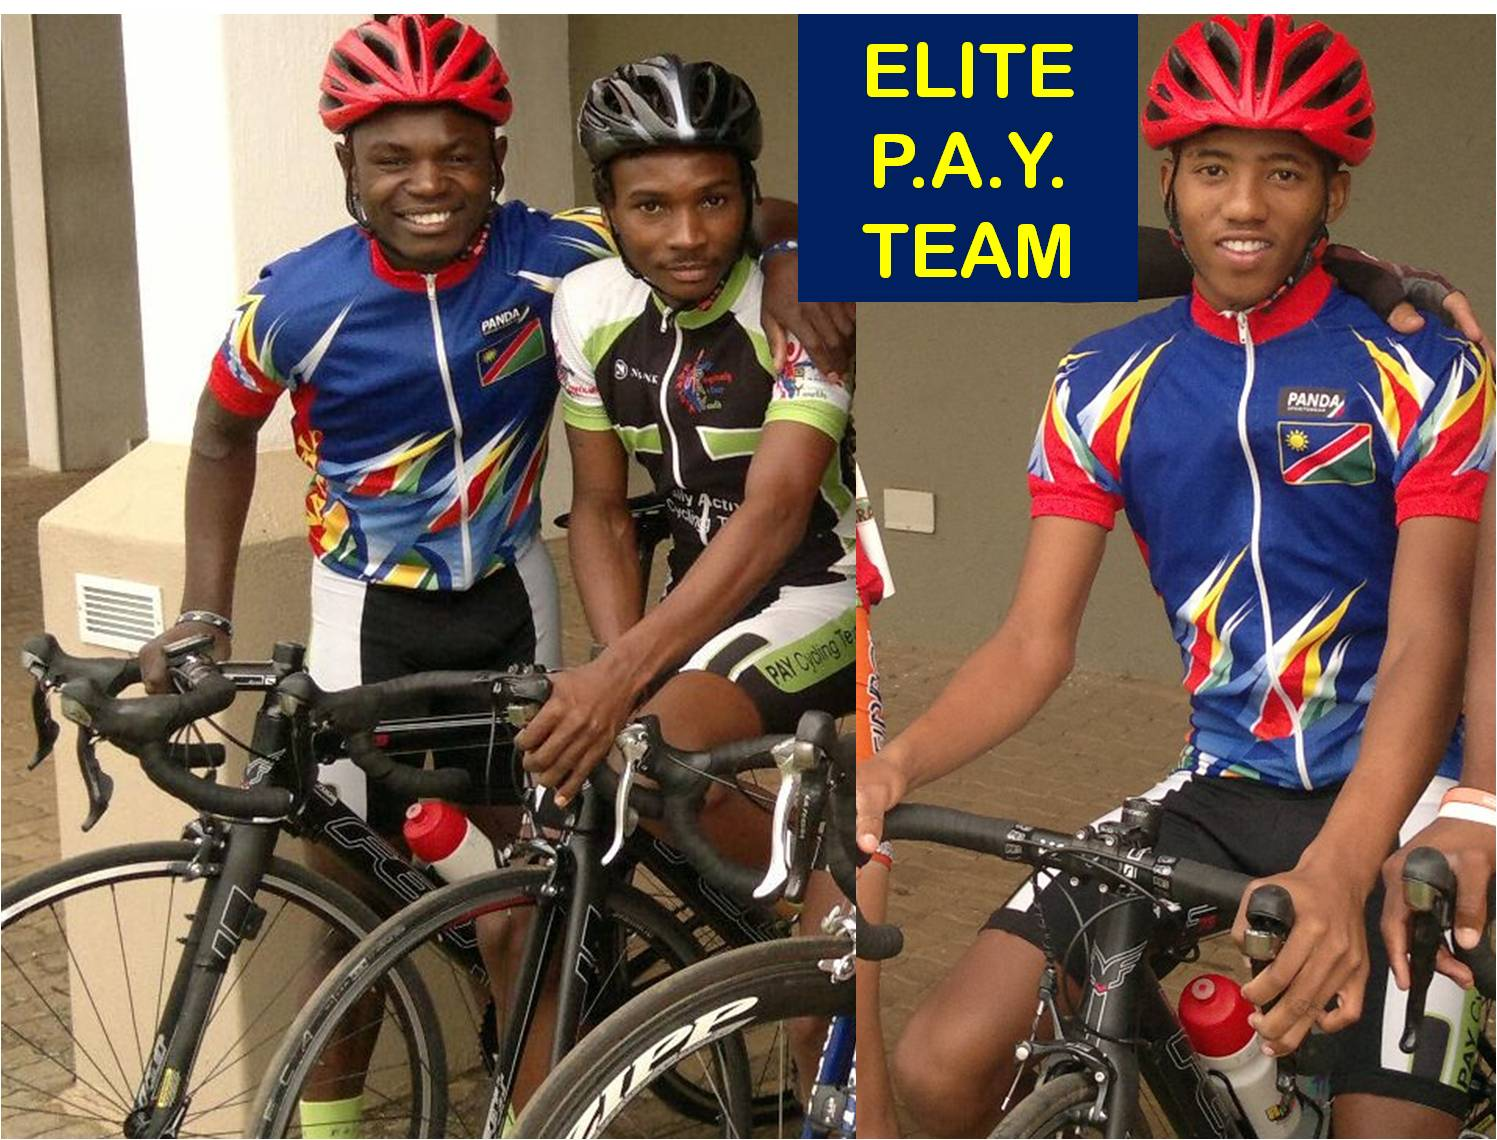 elite PAY team